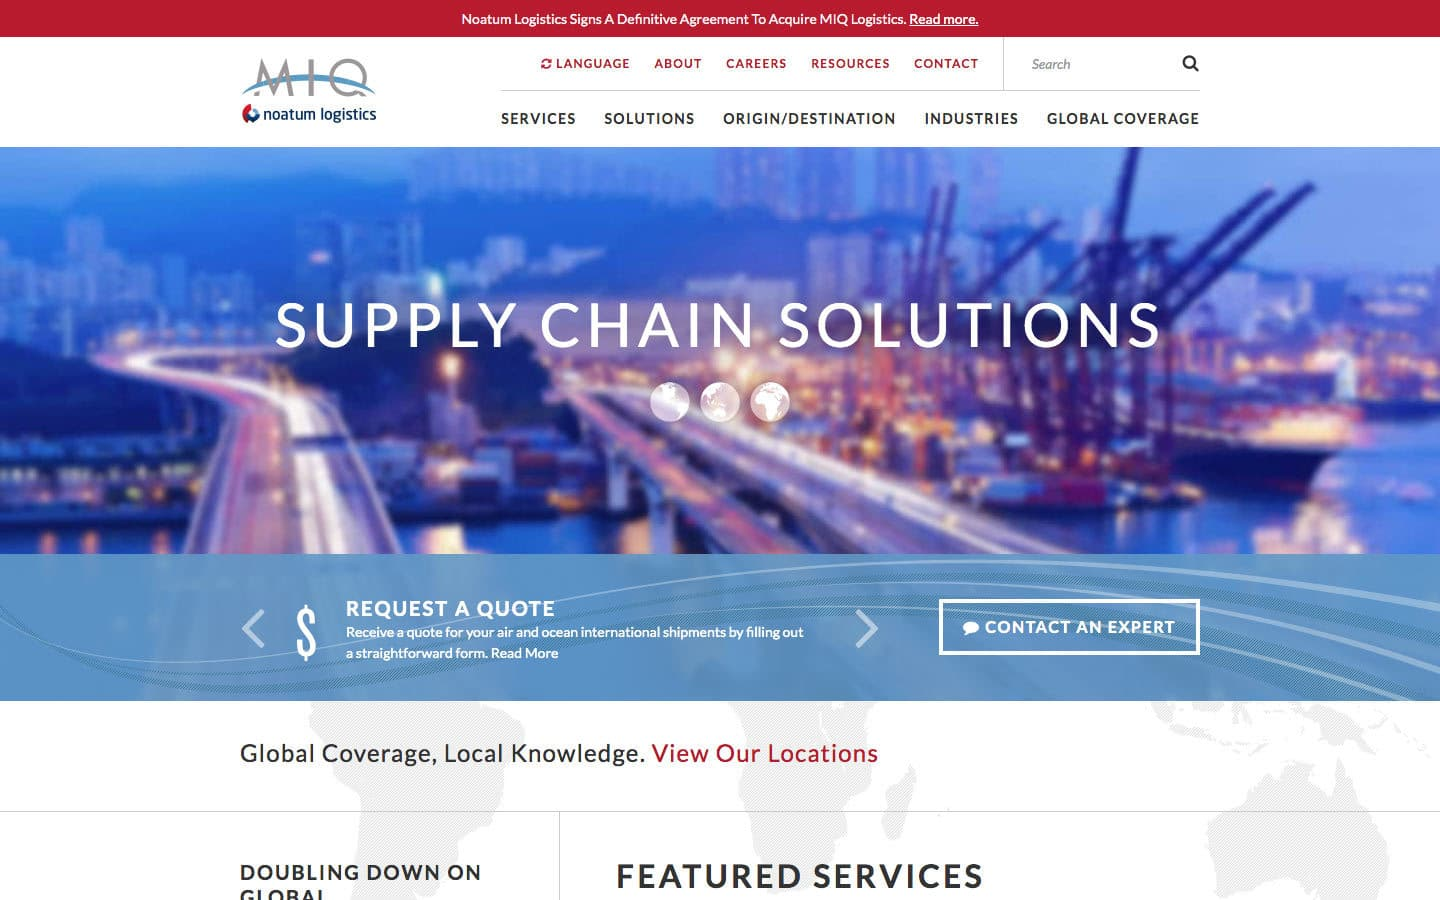 MIQ website screenshot